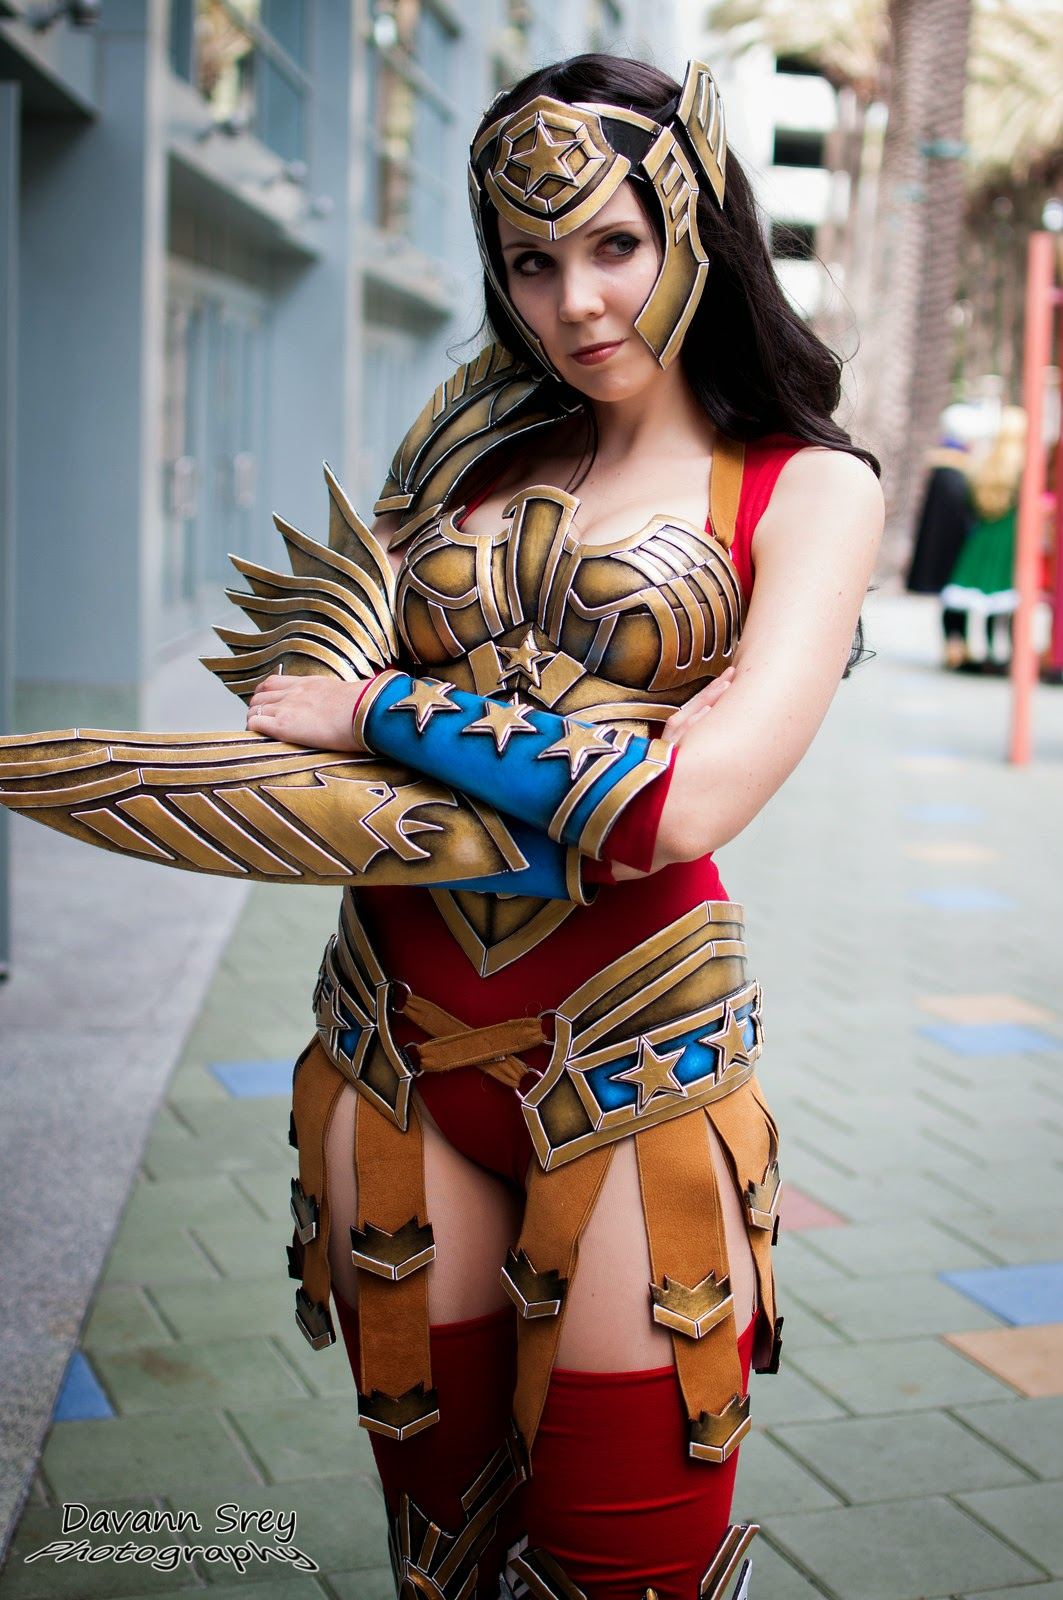 photo de cosplay de la wondercon 2014 d'une wonder woman guerrière